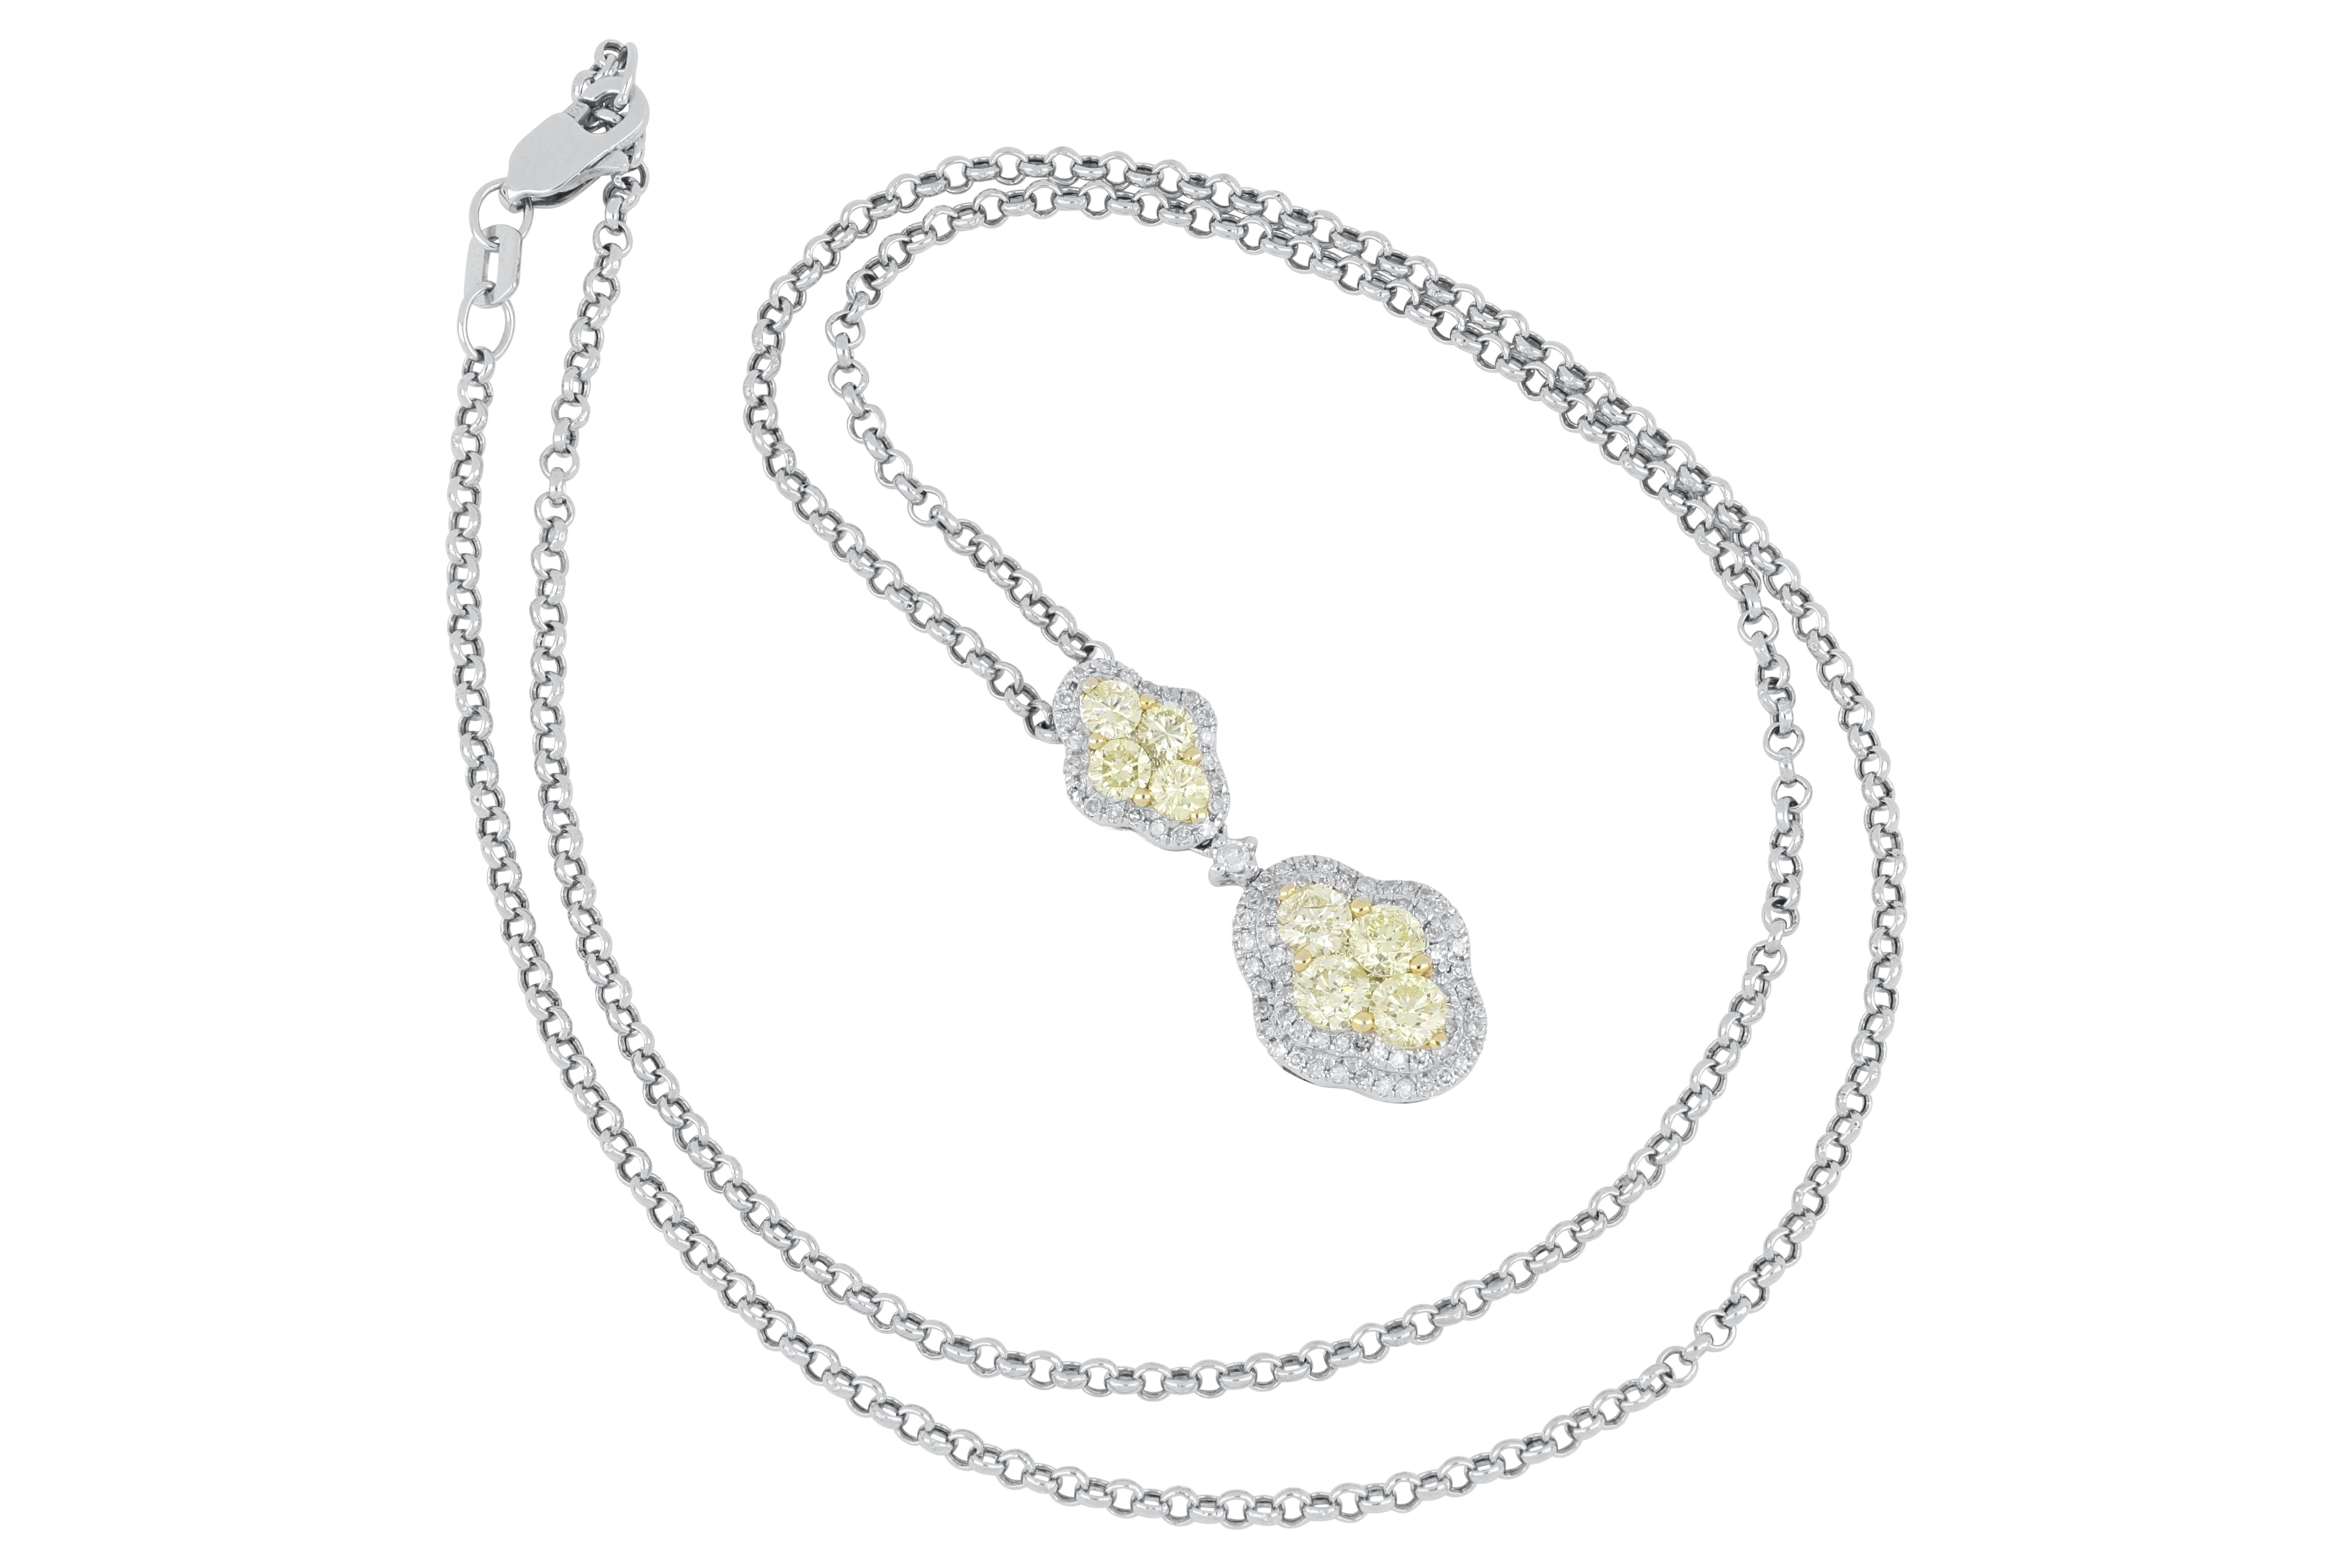 14ct white gold yellow & white diamond pendant on chain